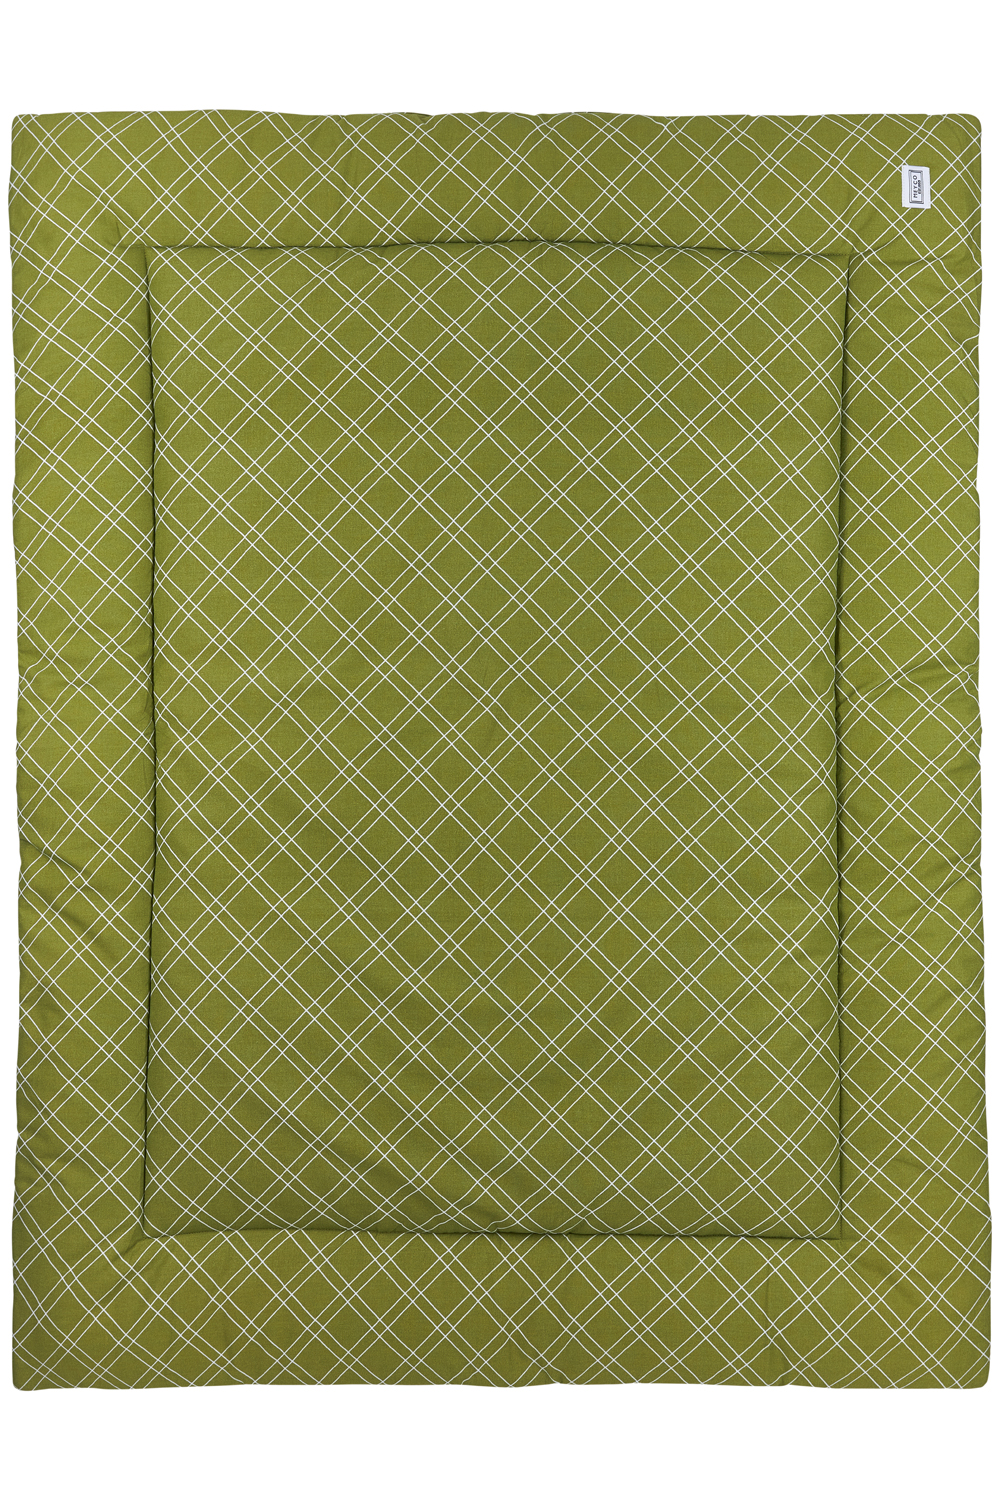 Laufgittereinlage Double Diamond - Avocado - 80x100cm